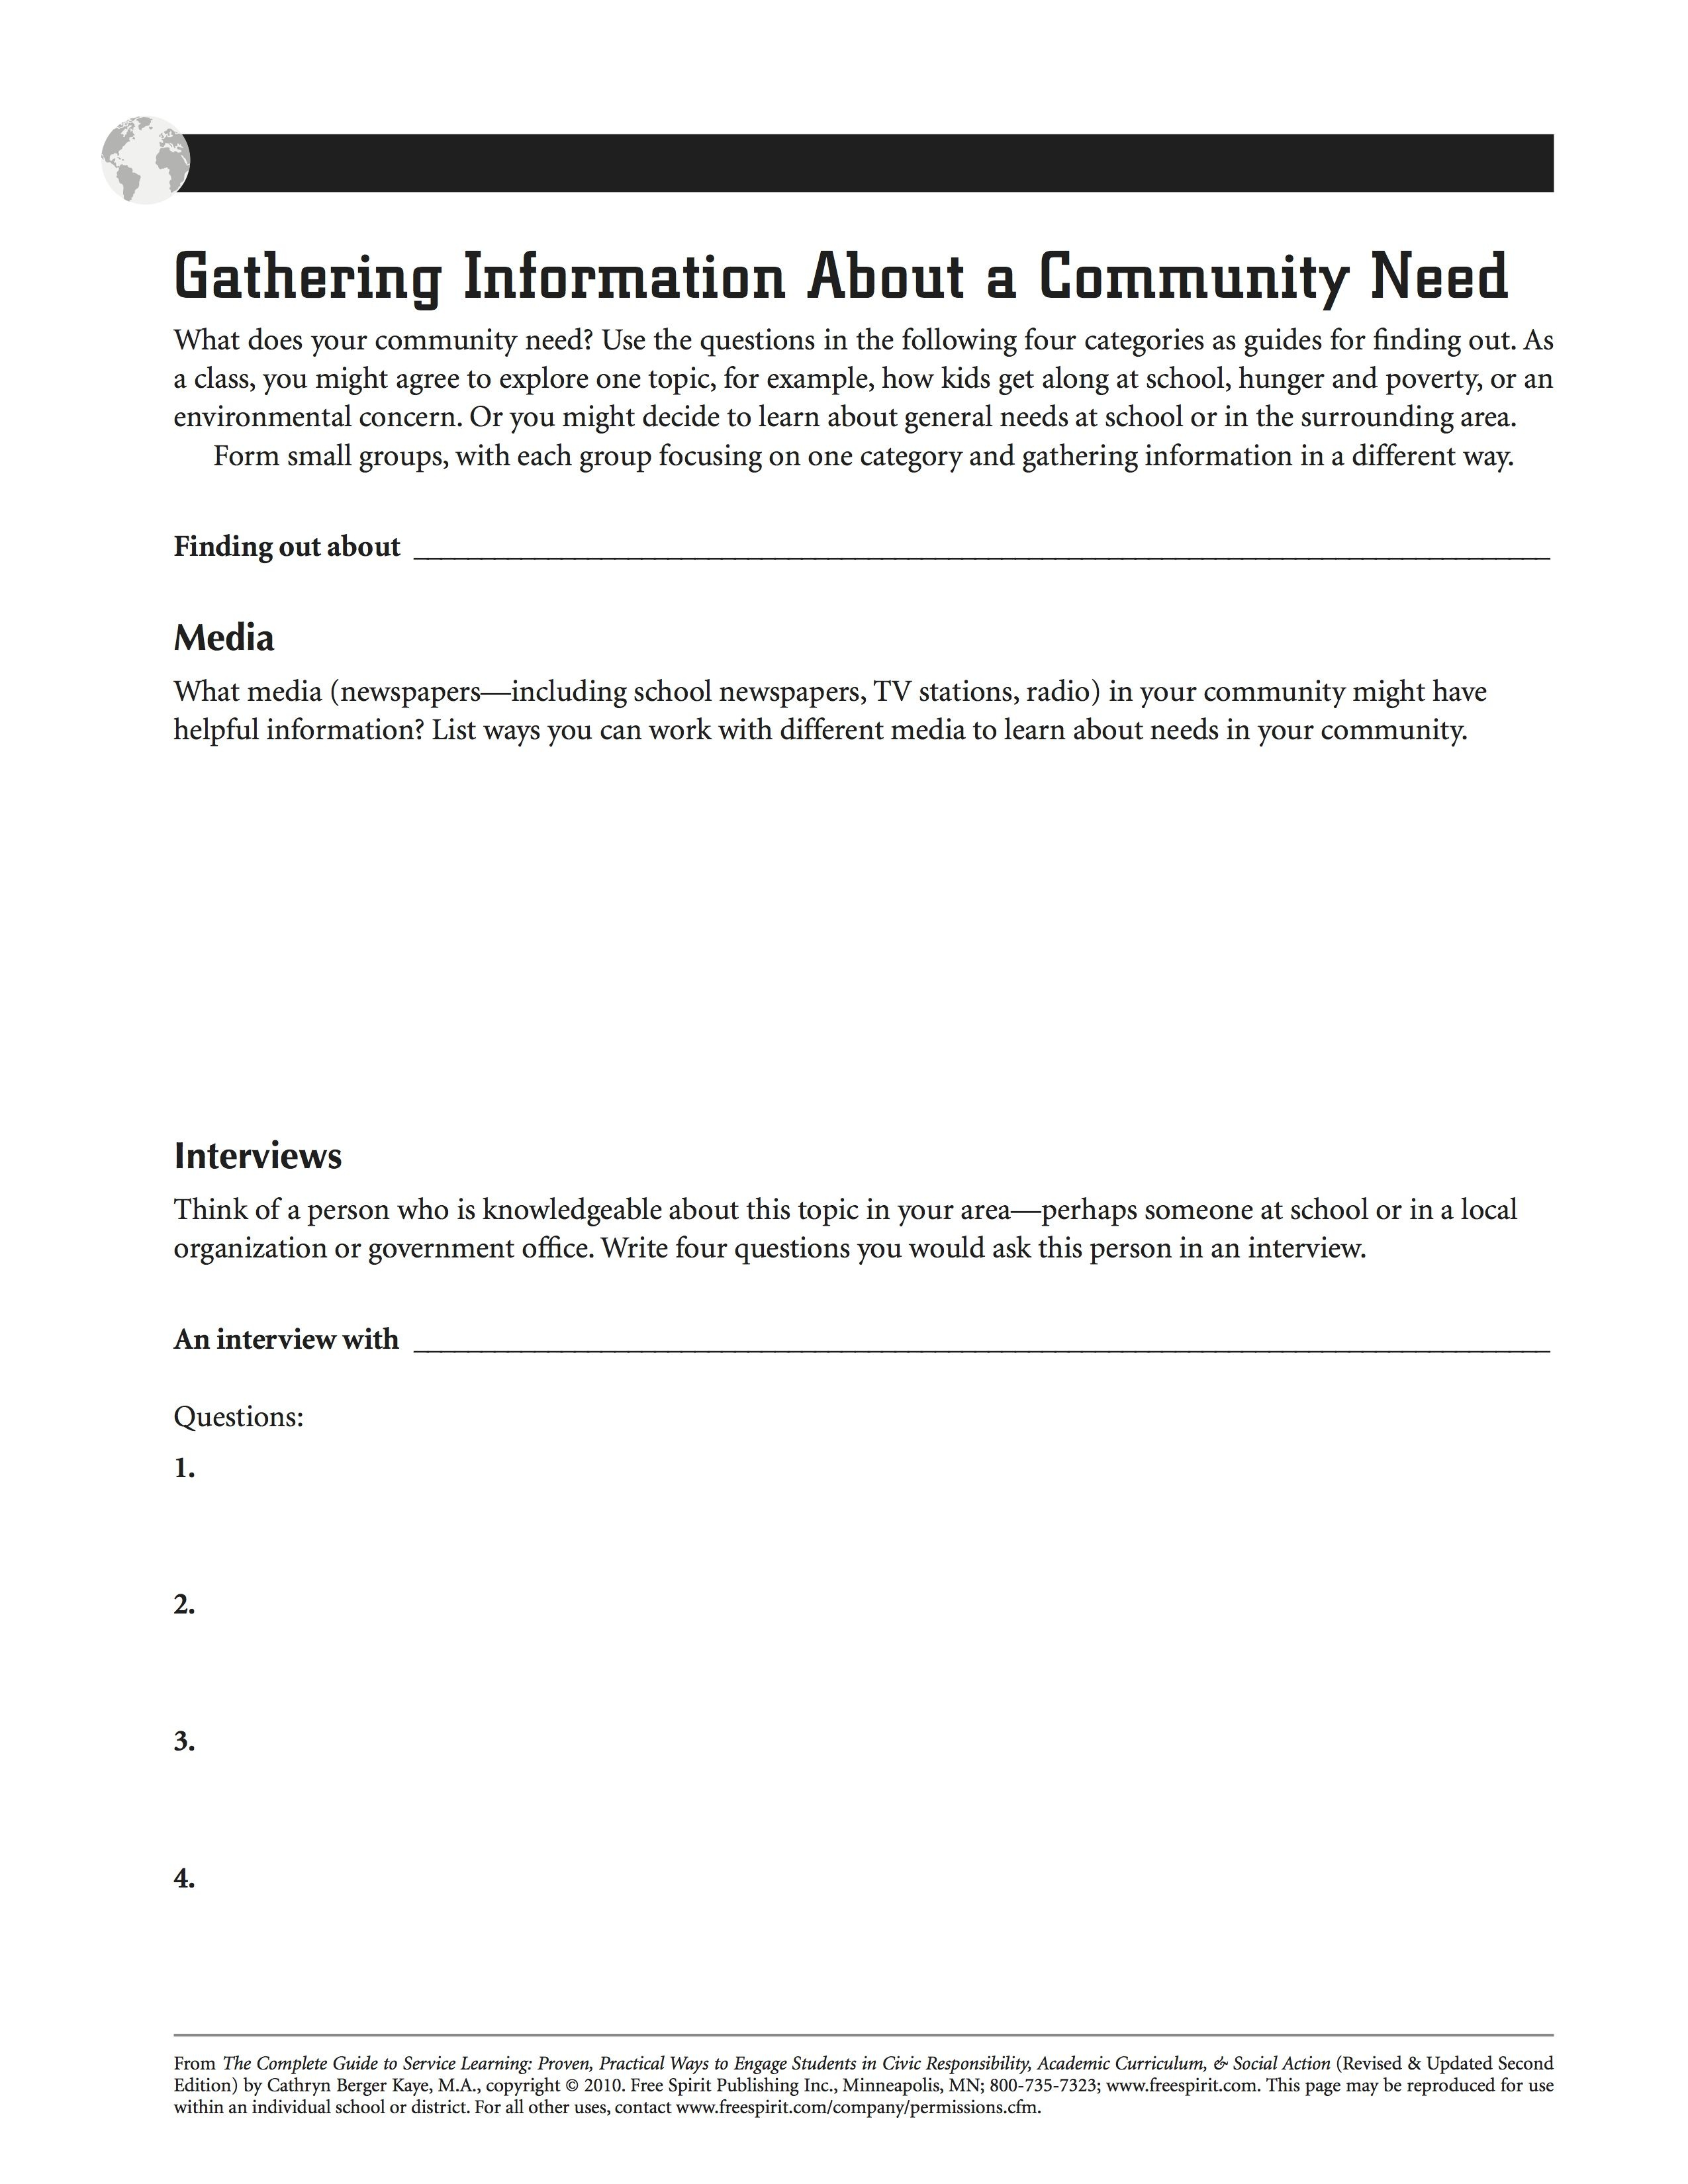 Free Printable Service Learning Worksheet: Gathering Information - Free Printable Customer Service Worksheets